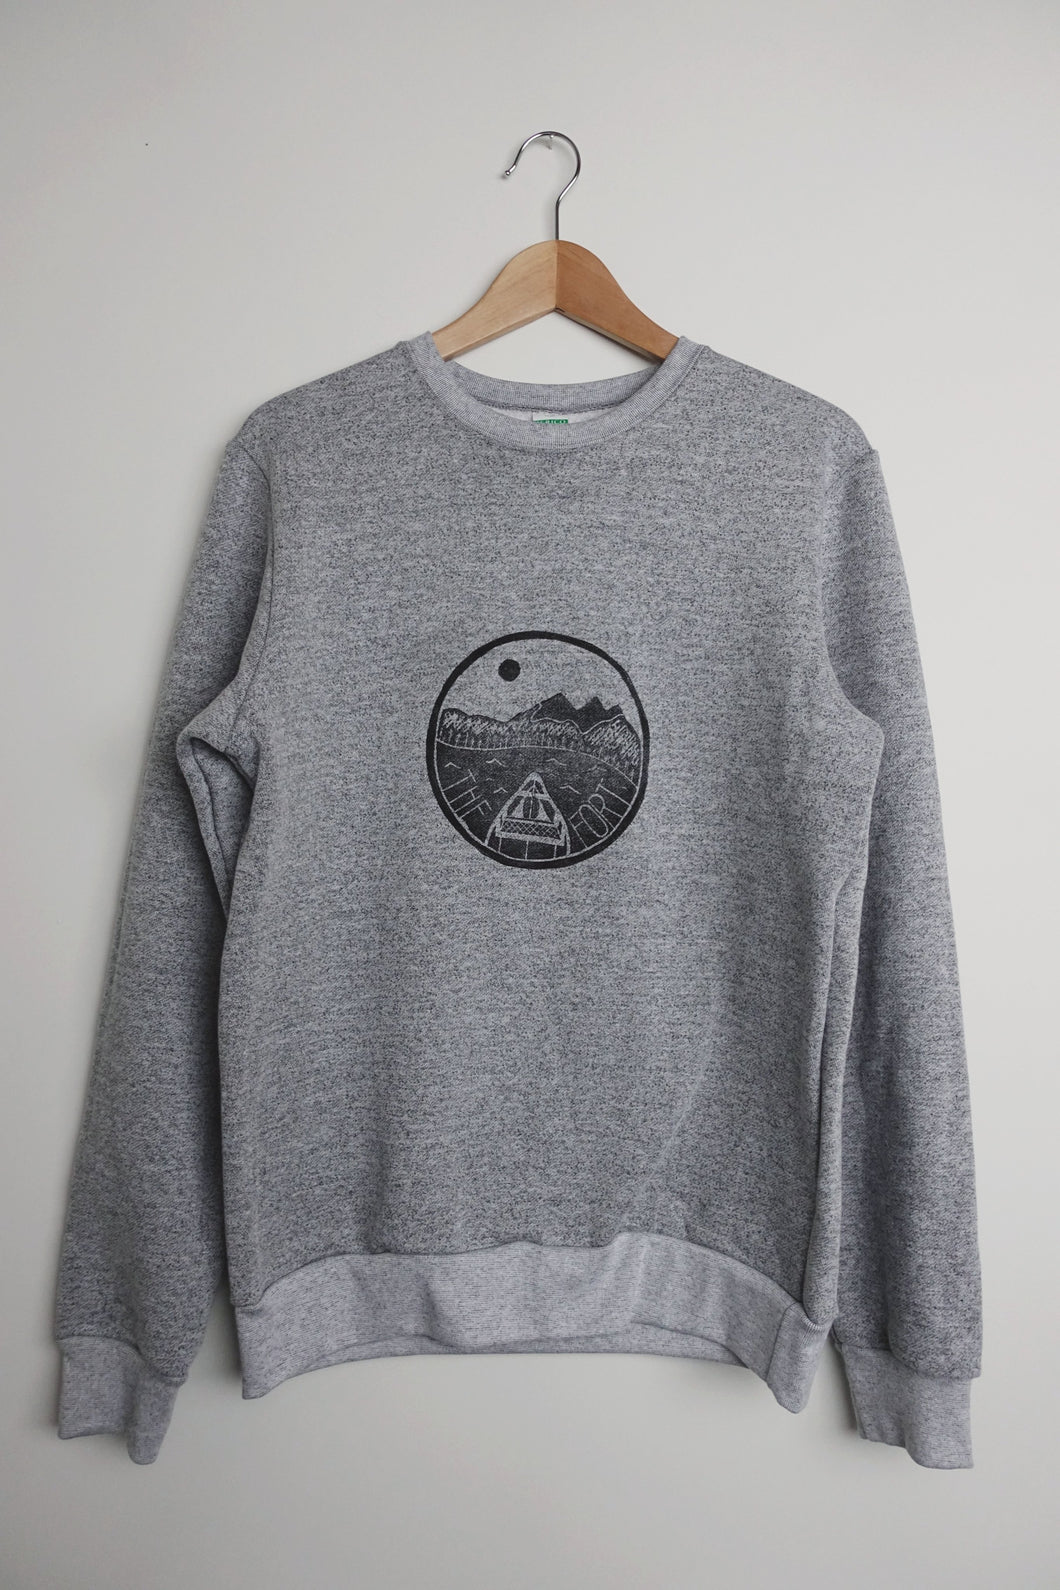 the fort unisex light grey melange sweatshirt